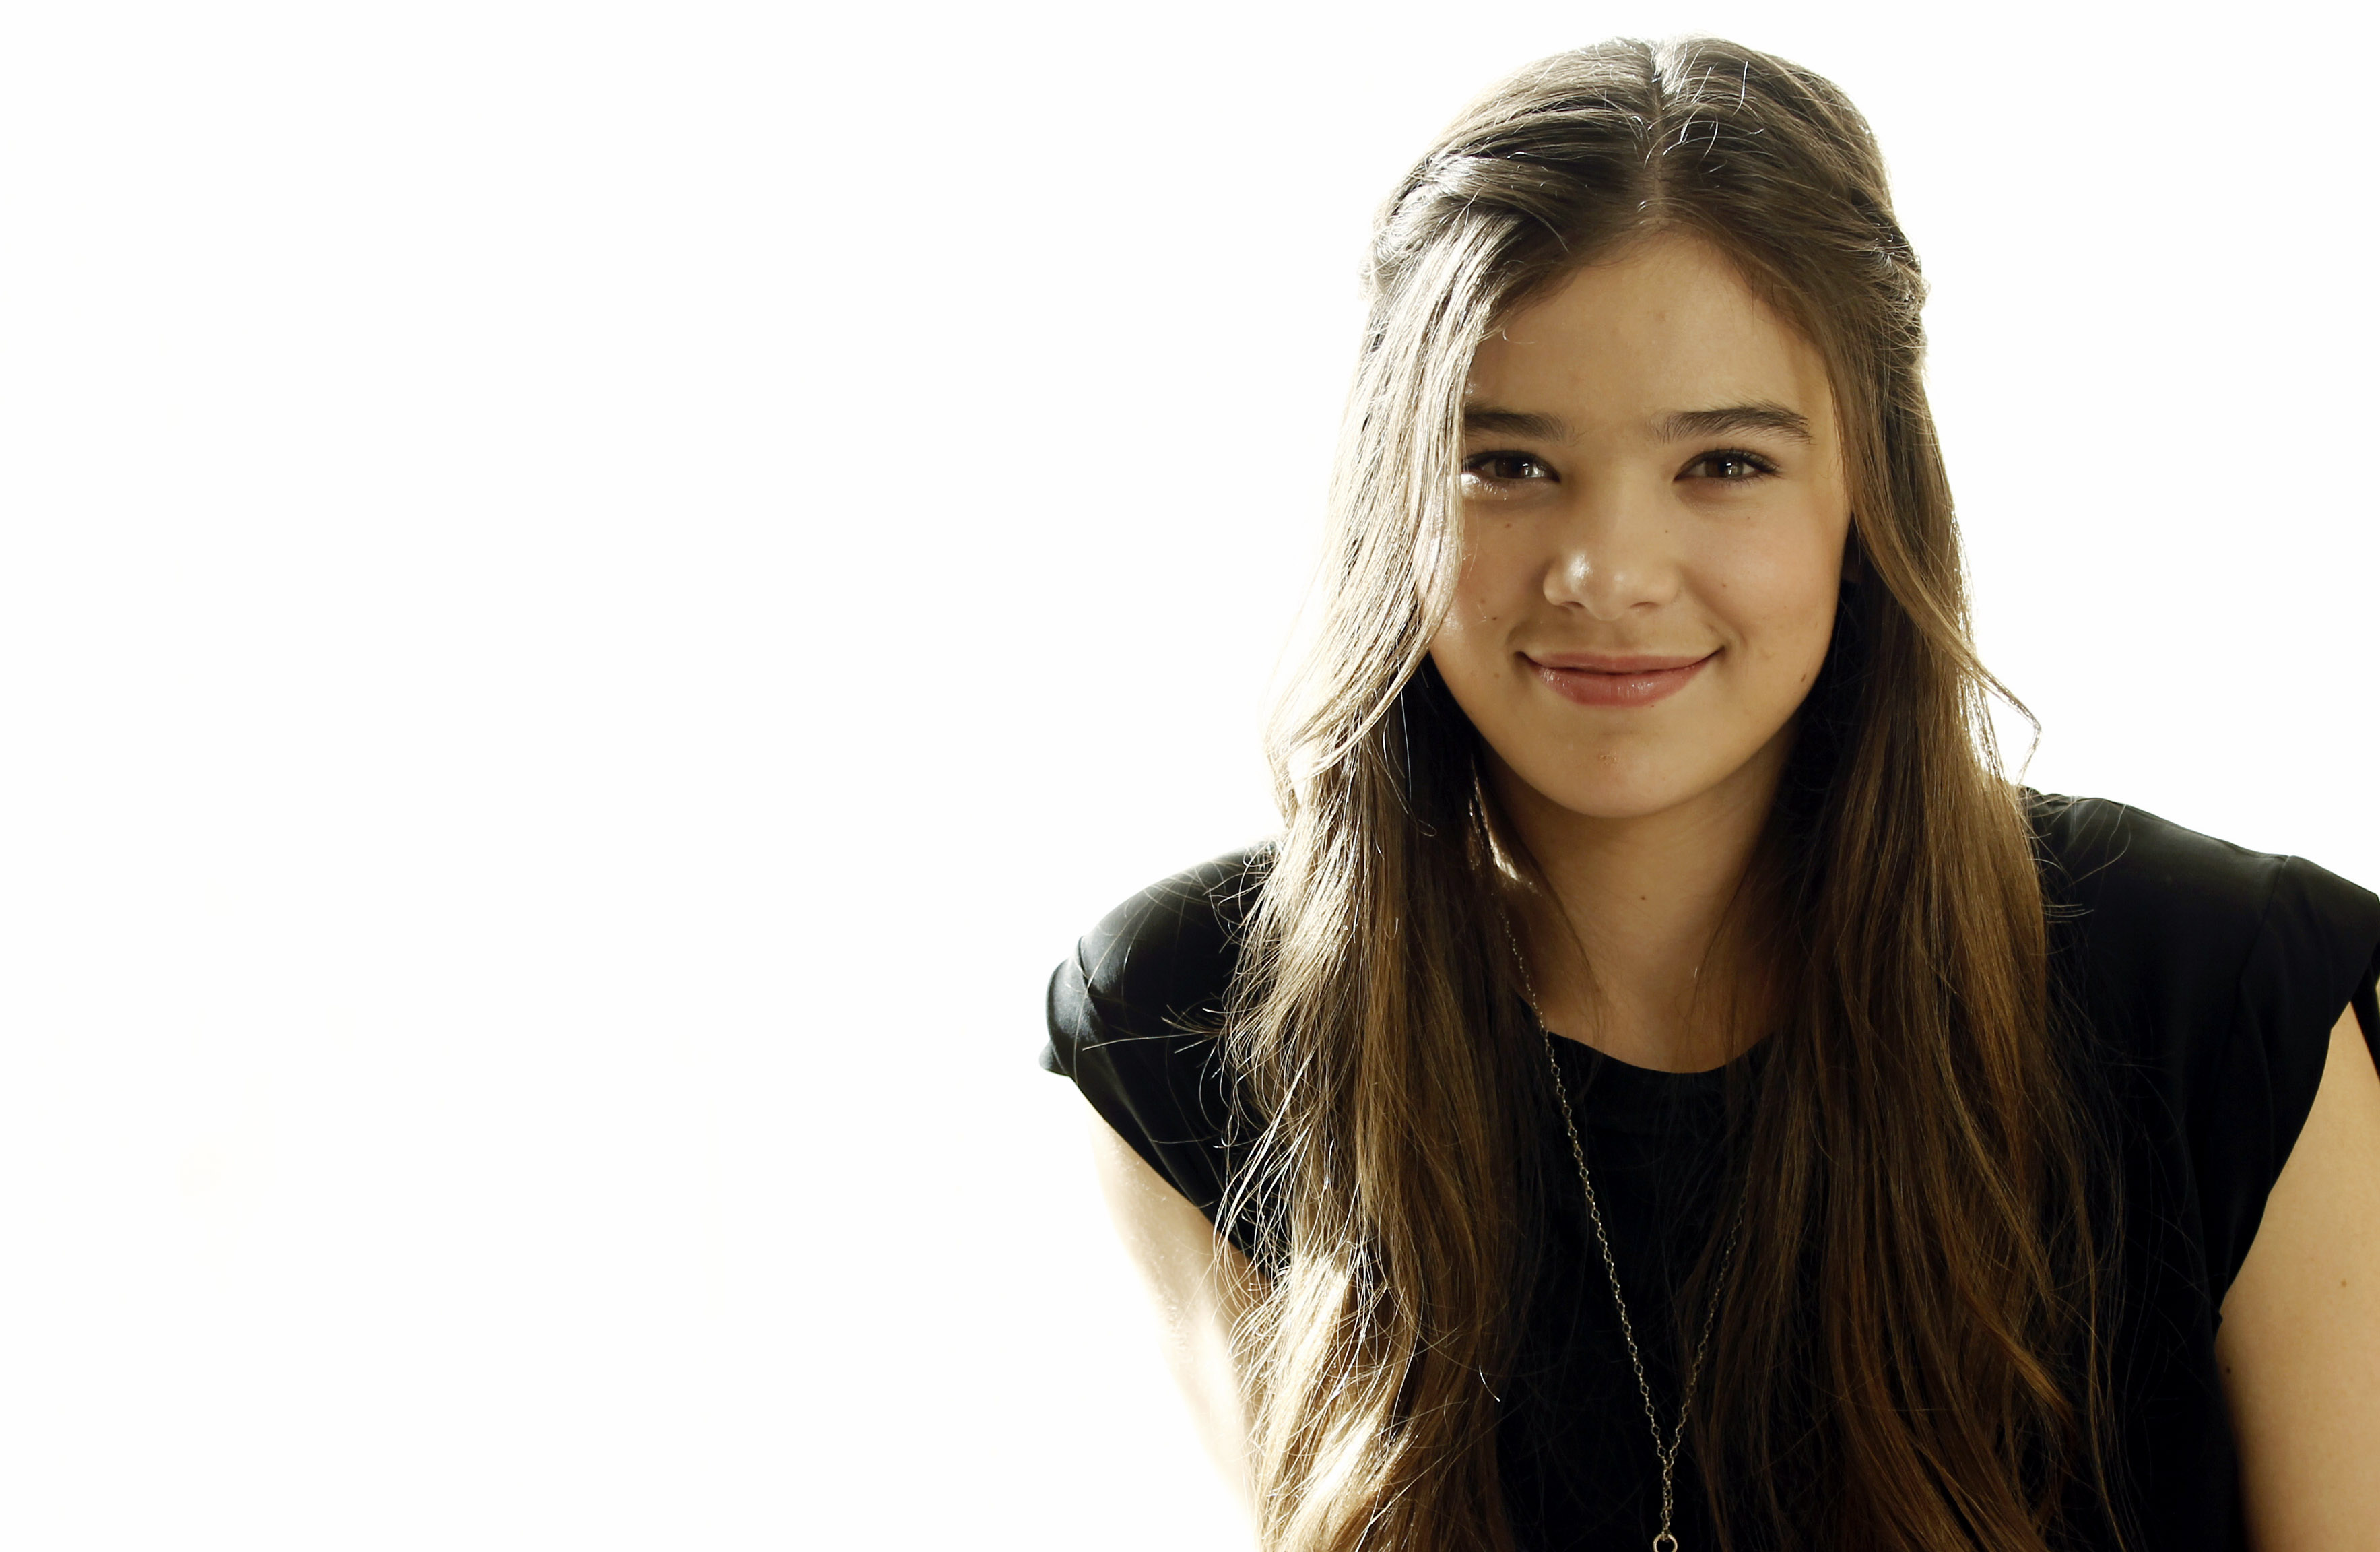 Cute Girl Wallpaper With Smile 9 Hd Hailee Steinfeld Wallpapers Hdwallsource Com